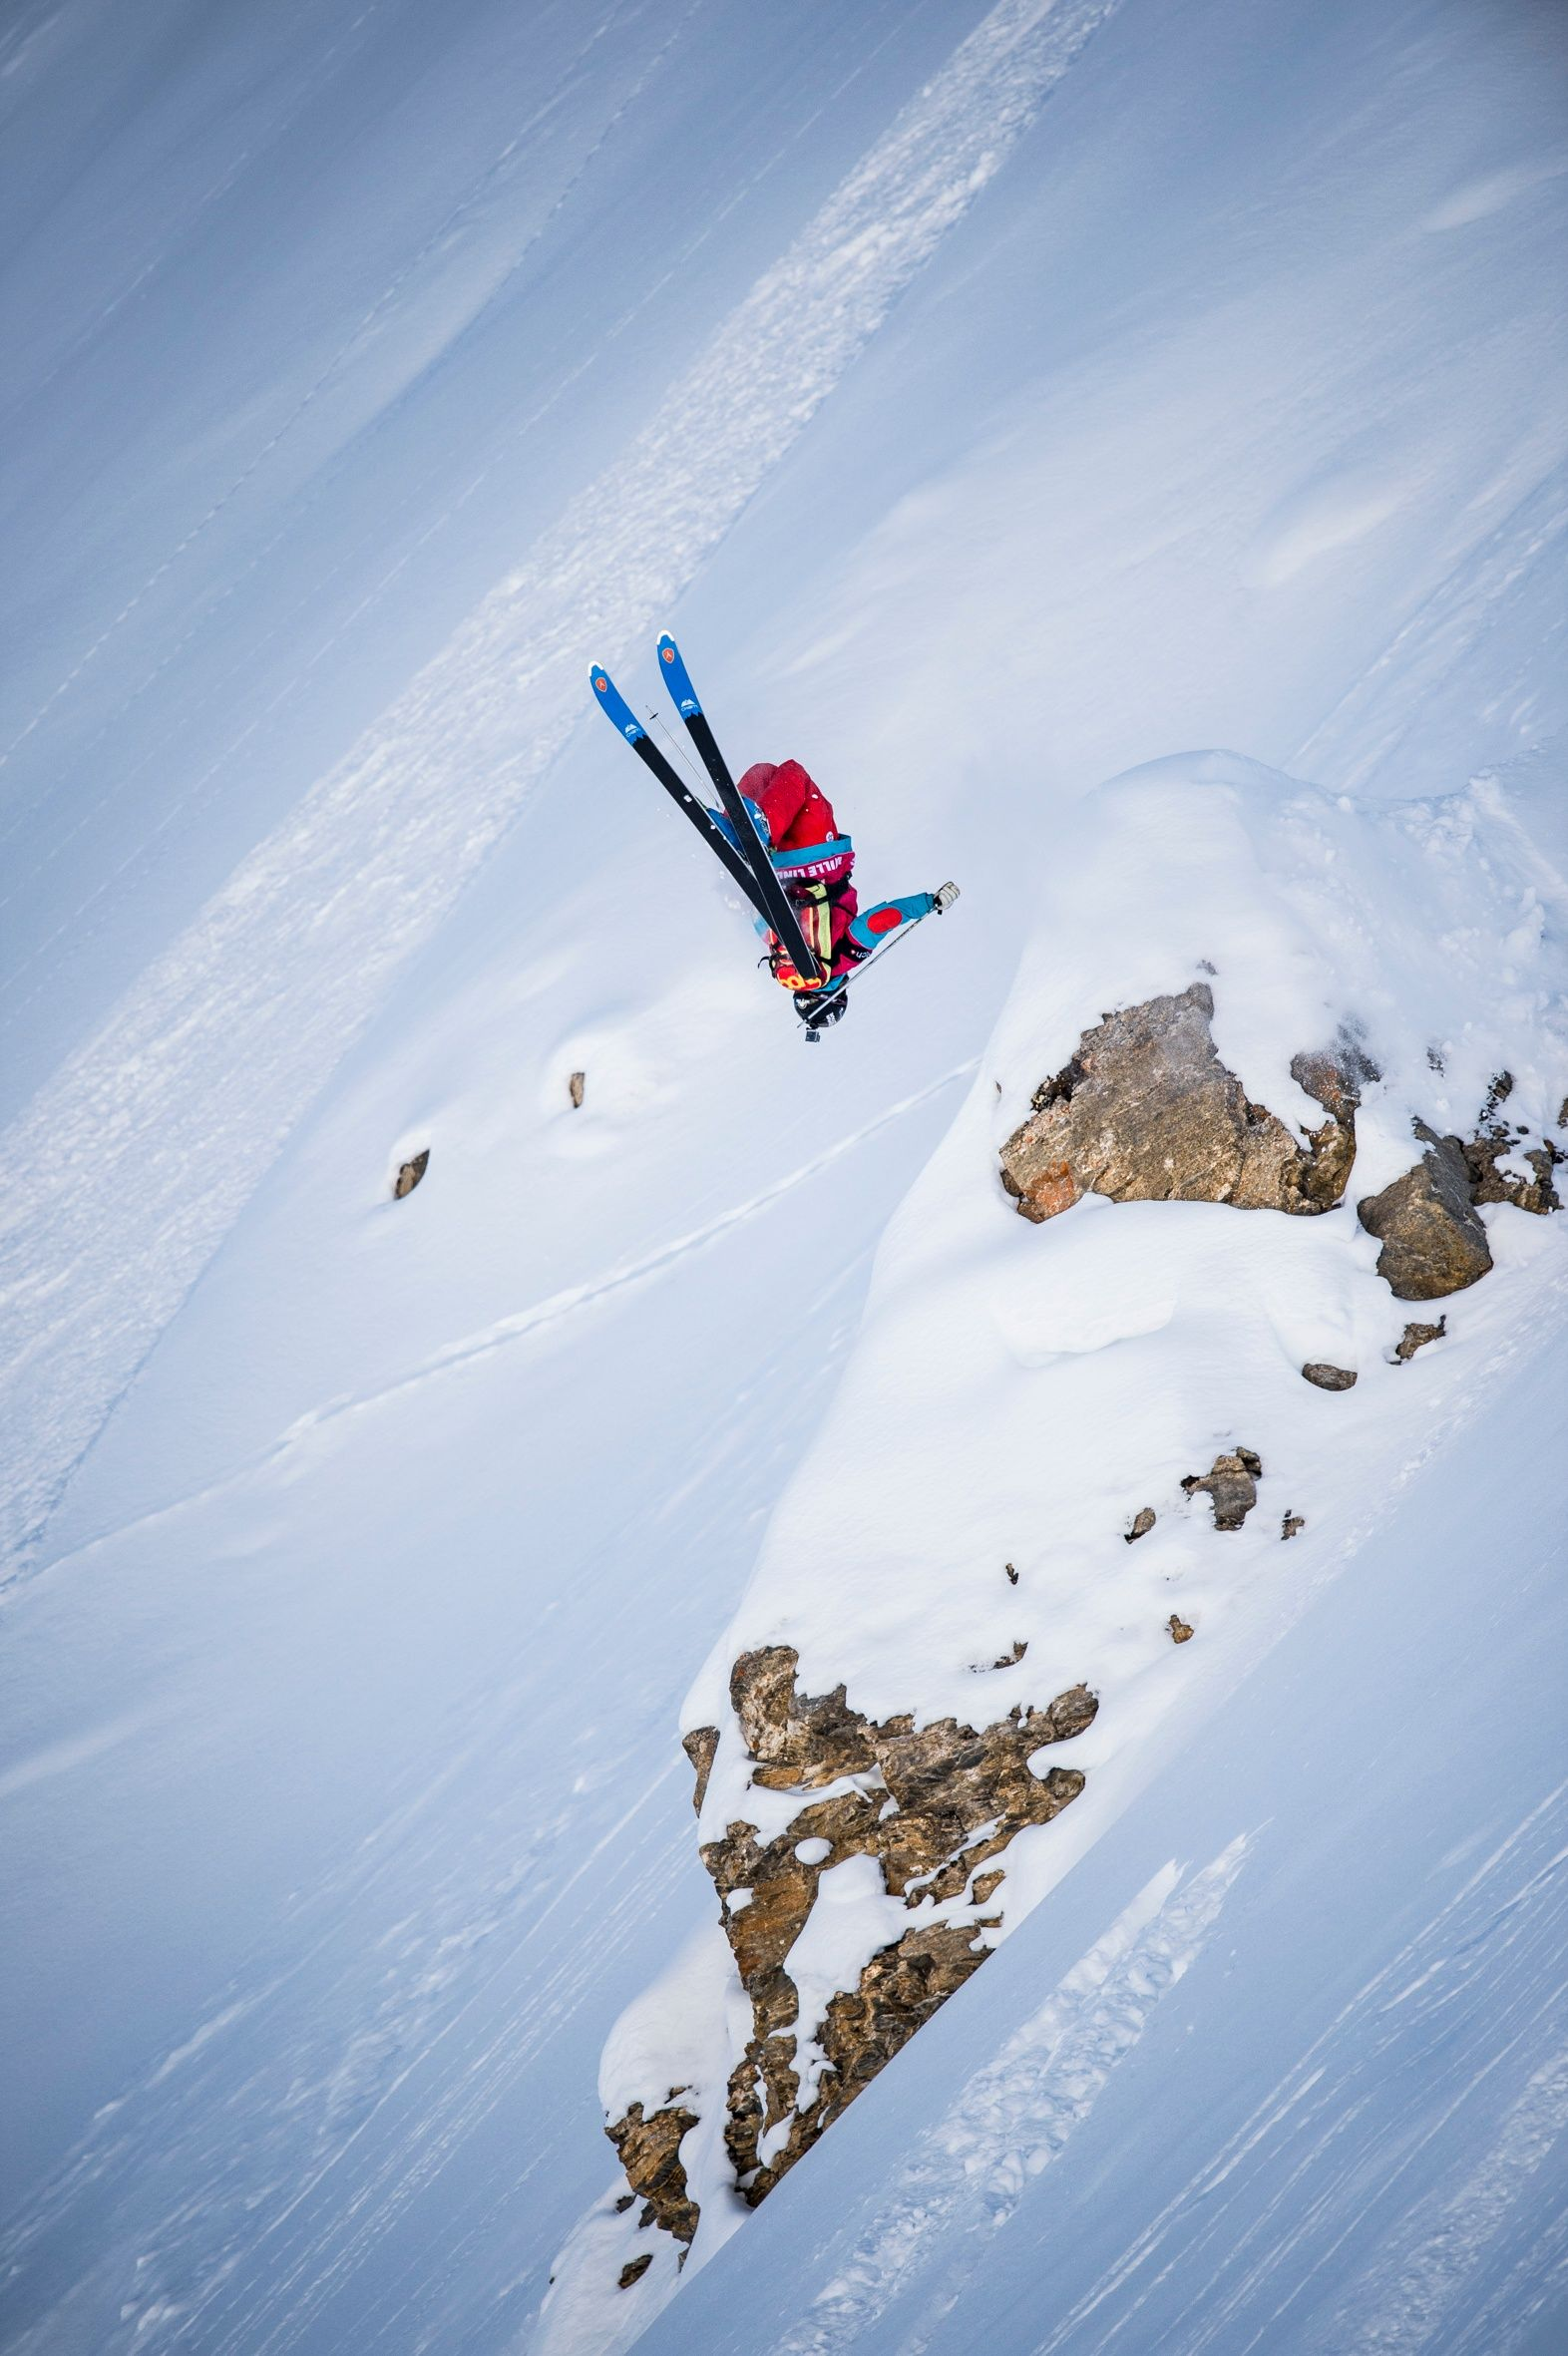 Swatch Freeride World Tour by The North Face 2014: The best riders on the best mountains in the ultimate freeride competition. In 2014, the Swatch Freeride World Tour goes into its 7th season and consists of six (6) stops in Courmayeur Mont-Blanc (Italy), Chamonix-Mont-Blanc (France), Fieberbrunn Kitzbüheler Alpen (Austria), Revelstoke (Canada), Kirkwood (USA) and the final in Verbier (Switzerland).